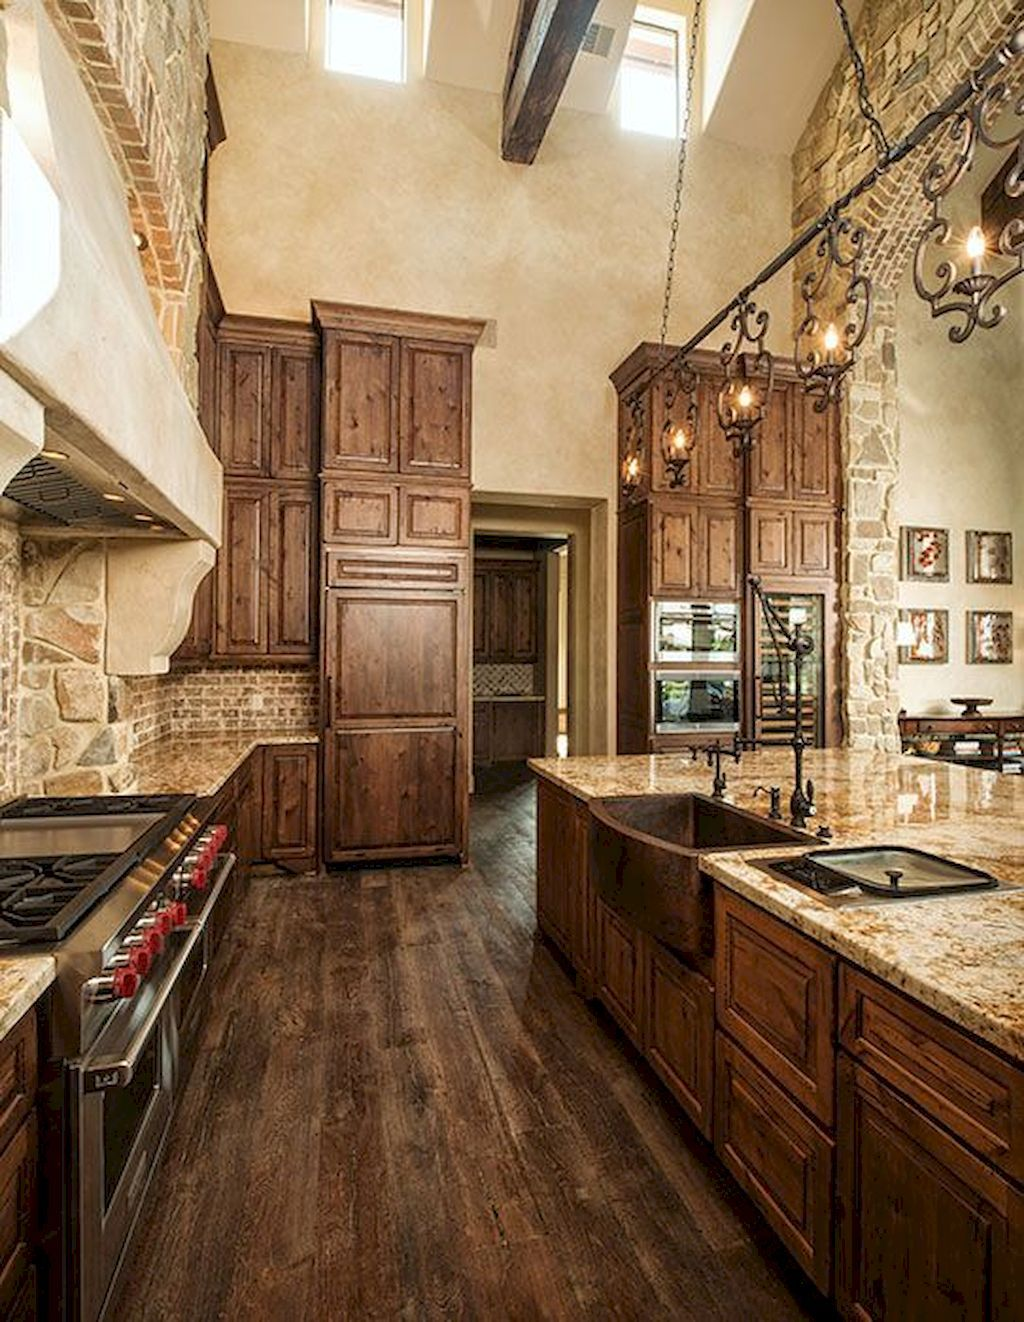 Wood Kitchen Cabinets An Investment To Awesome Home Z Rustic Design Italian